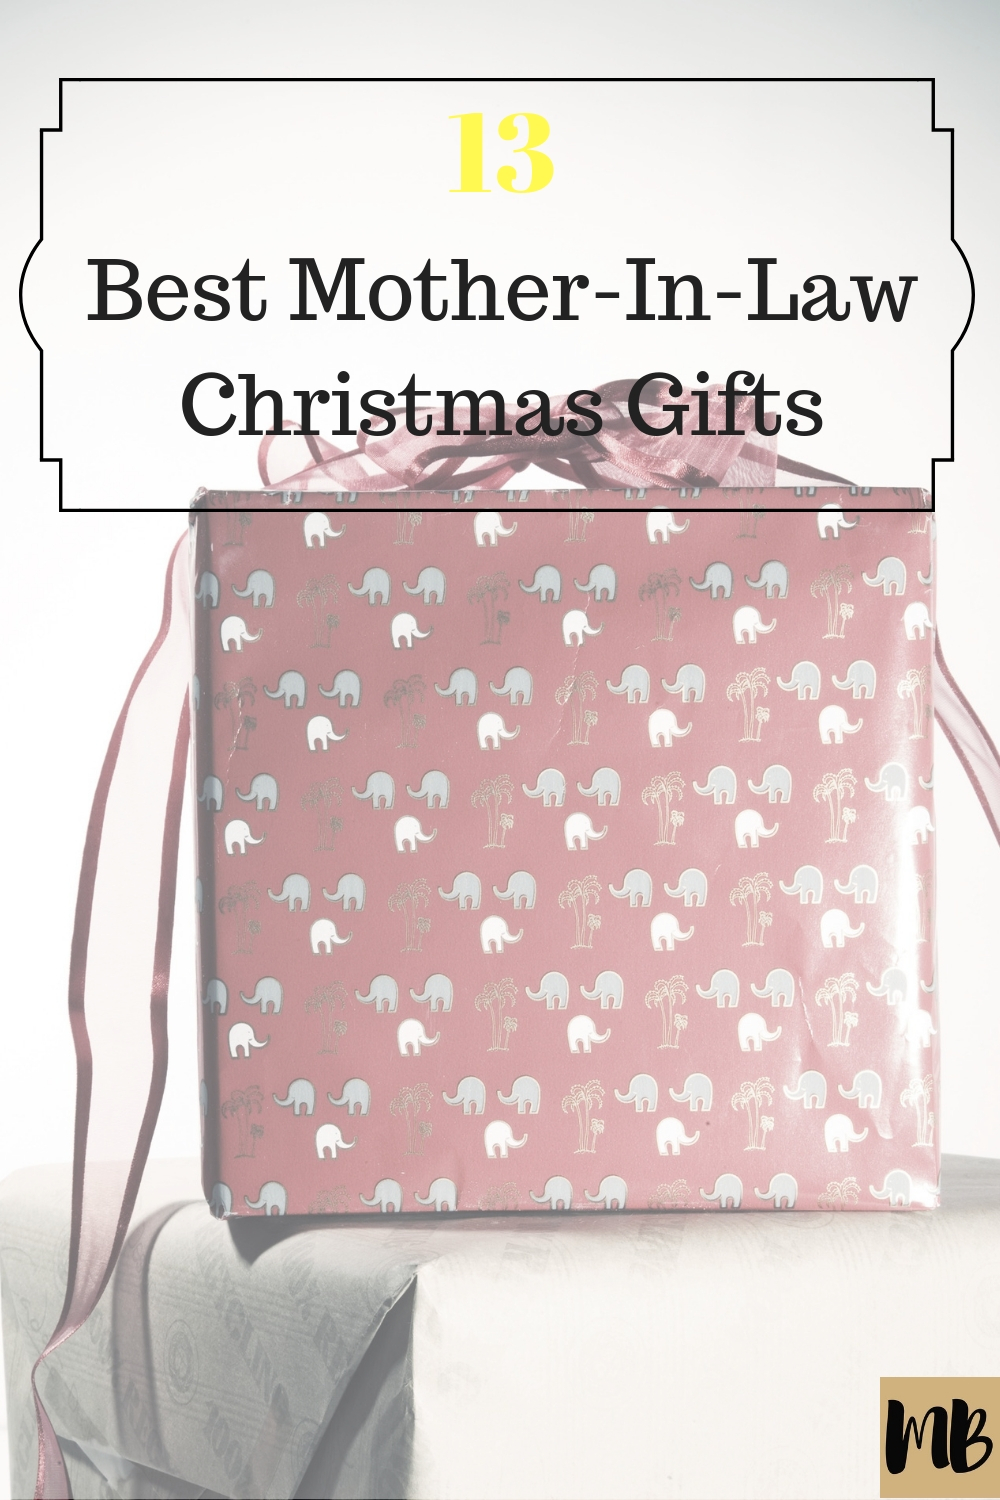 13 Best Christmas Gifts for Your Mother-In-Law